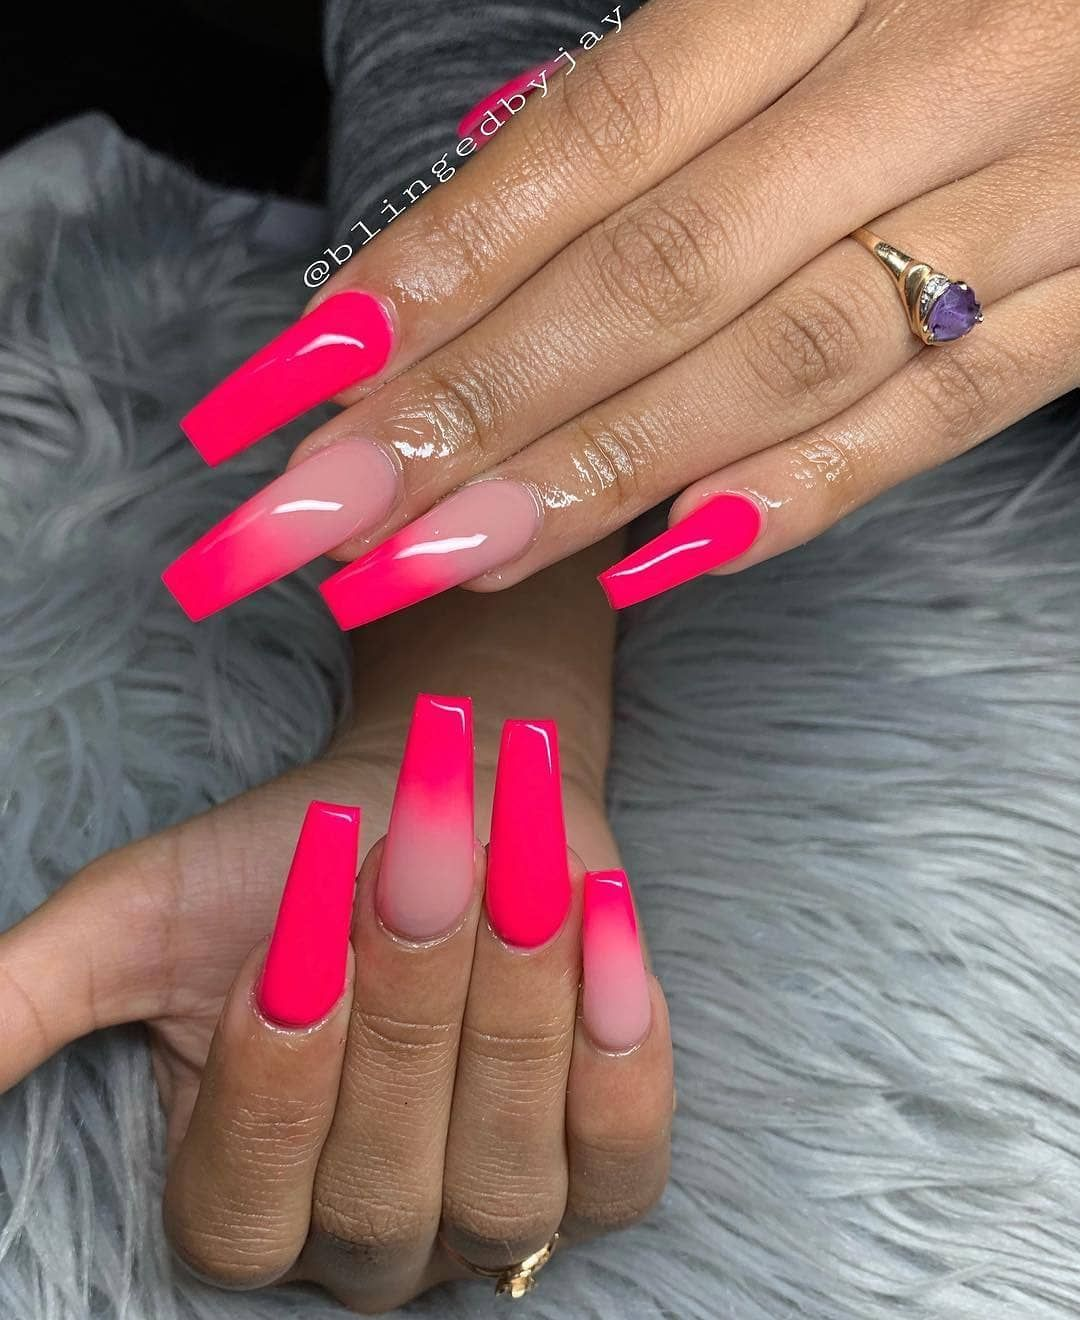 Nail Salon Near Me In 2020 Pink Ombre Nails Ombre Acrylic Nails Pink Acrylic Nails